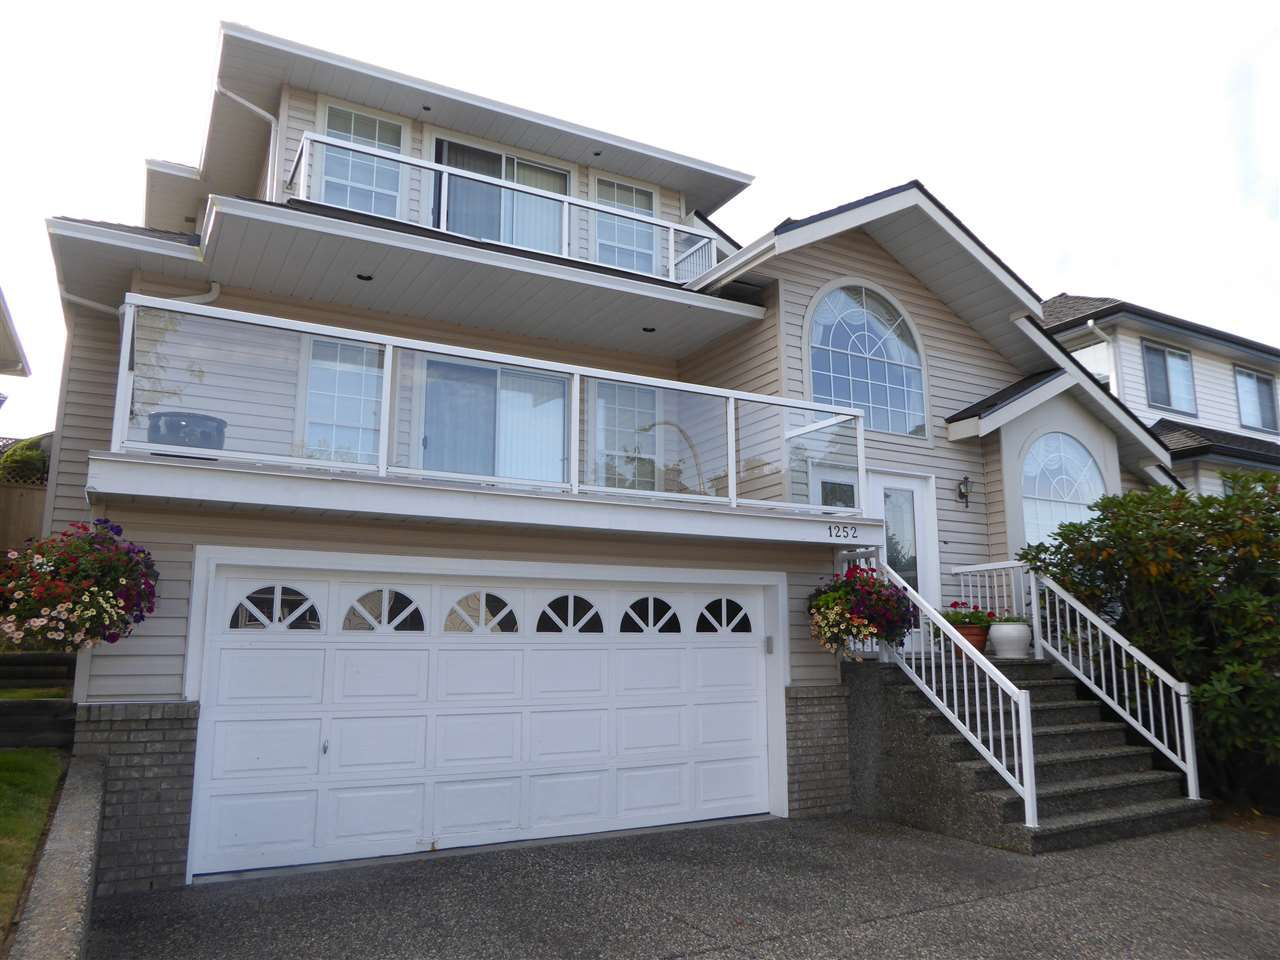 Main Photo: 1252 DEWAR Way in Port Coquitlam: Citadel PQ House for sale : MLS®# R2199639